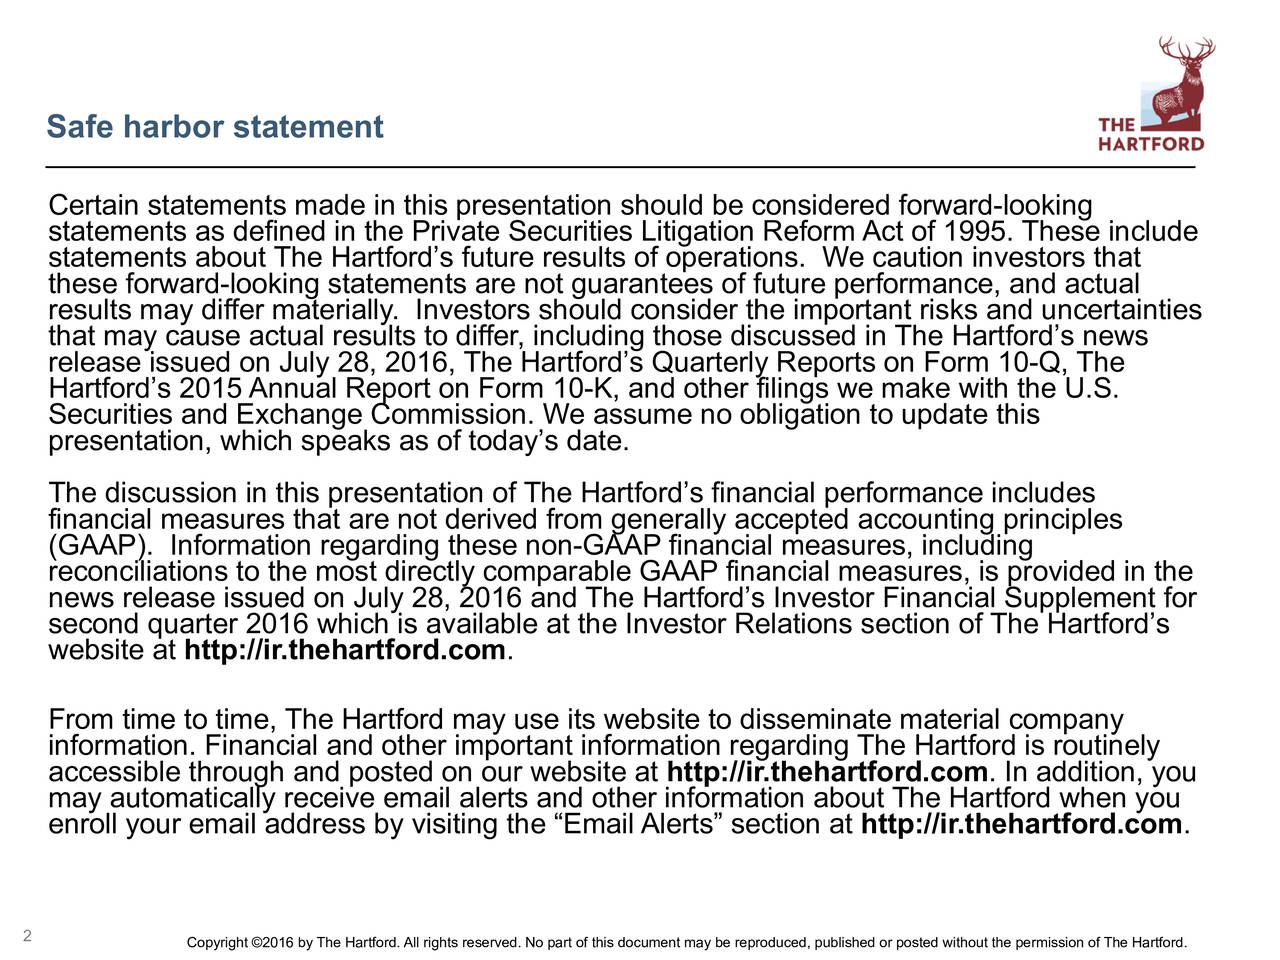 Certain statements made in this presentation should be considered forward-looking statements about The Hartfords future results of operations. We caution investors thatclude these forward-looking statements are not guarantees of future performance, and actual results may differ materially. Investors should consider the important risks and uncertainties that may cause actual results to differ, including those discussed in The Hartfords news release issued on July28, 2016, The Hartfords Quarterly Reports on Form 10-Q, The Hartfords 2015 Annual Report on Form 10-K, and other filings we make with the U.S. Securities and Exchange Commission. We assume no obligation to update this presentation, which speaks as of todays date. The discussion in this presentation of The Hartfords financial performance includes financial measures that are not derived from generally accepted accounting principles (GAAP). Information regarding these non-GAAP financial measures, including news release issued on July28, 2016 and The Hartfords Investor Financial Supplement forhe second quarter 2016 which is available at the Investor Relations section of The Hartfords website at http://ir.thehartford.com. From time to time, The Hartford may use its website to disseminate material company information. Financial and other important information regarding The Hartford is routinely accessible through and posted on our website at http://ir.thehartford.com. In addition, you may automatically receive email alerts and other information about The Hartford when you enroll your email address by visiting the Email Alerts section at http://ir.thehartford.com. 2